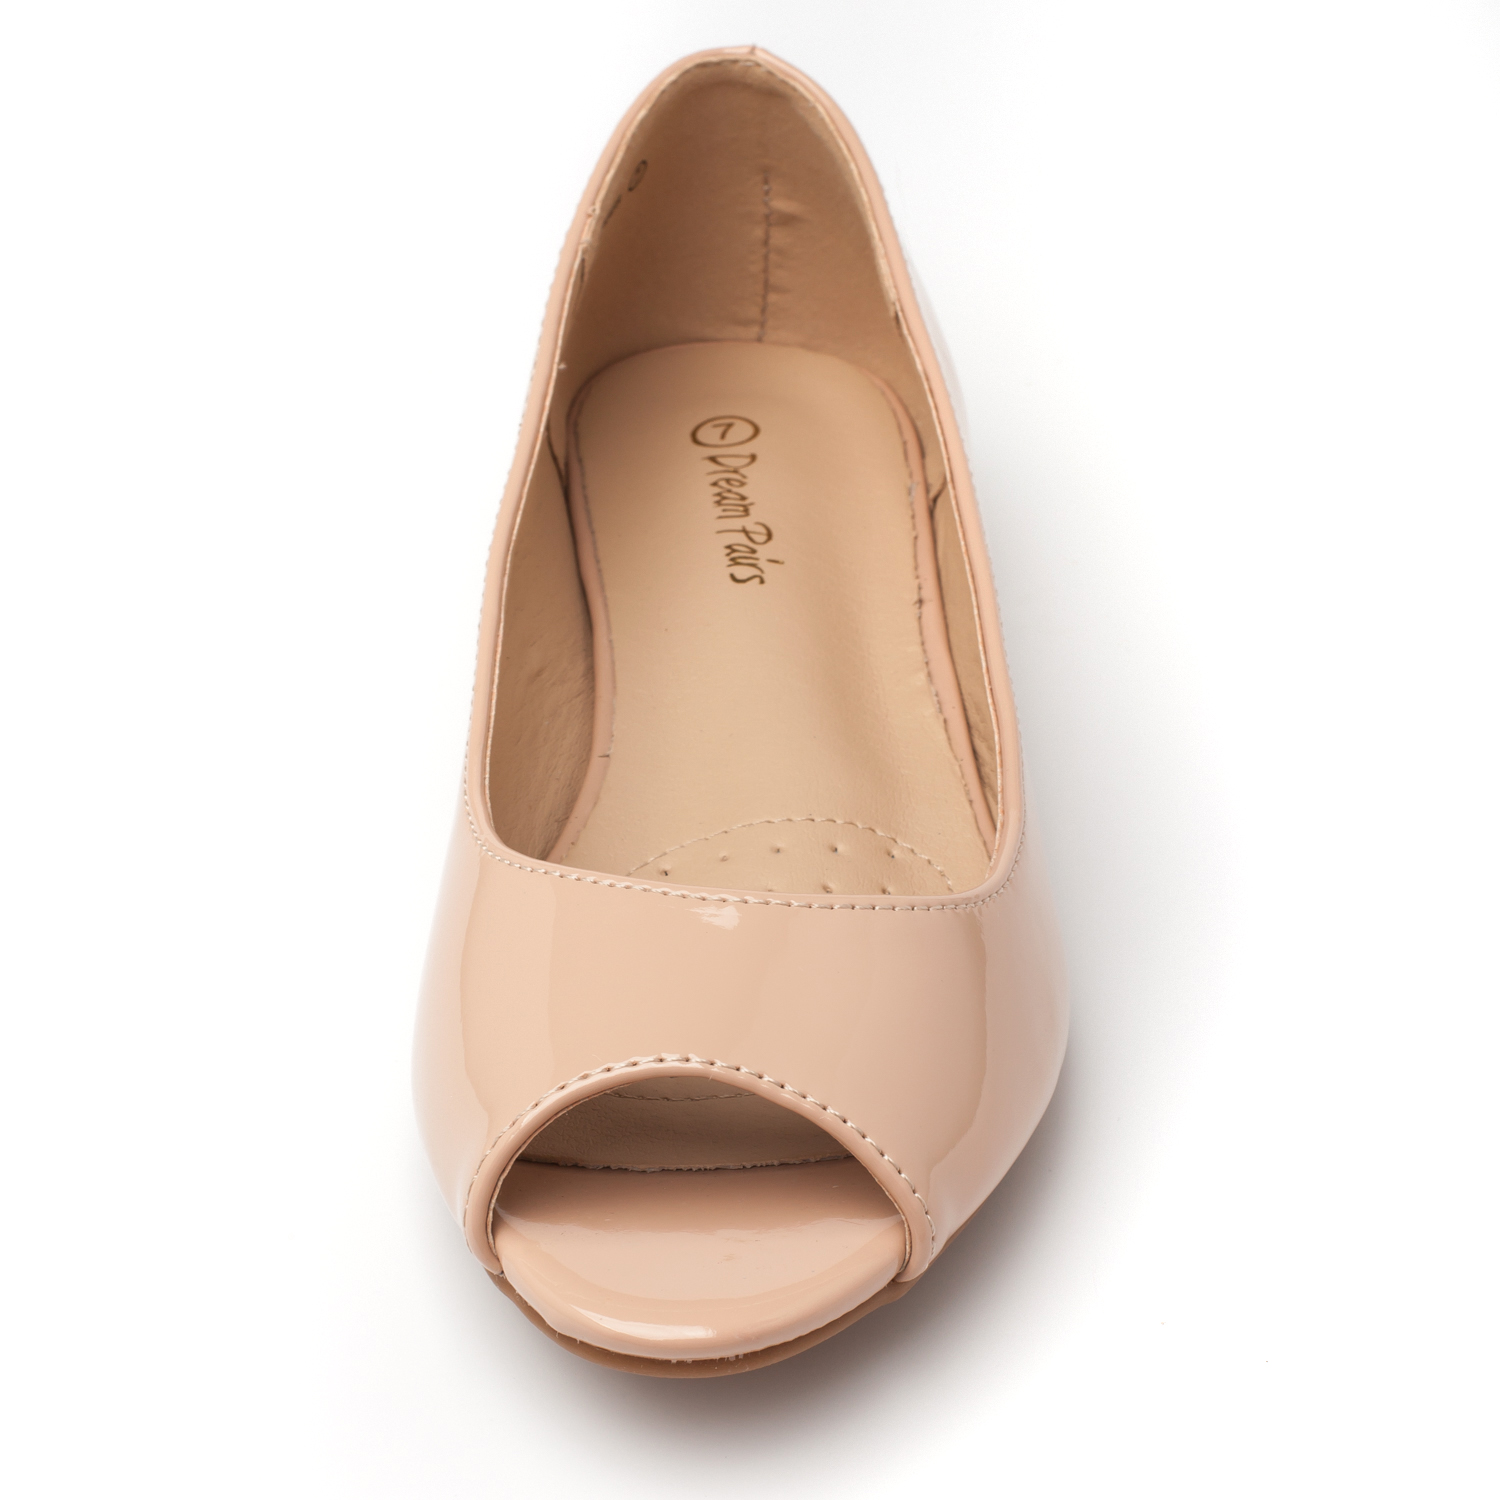 DREAM-PAIRS-Womens-Ballet-Flats-Low-Heel-Open-Toe-Slip-On-Dress-Flat-Shoes thumbnail 33